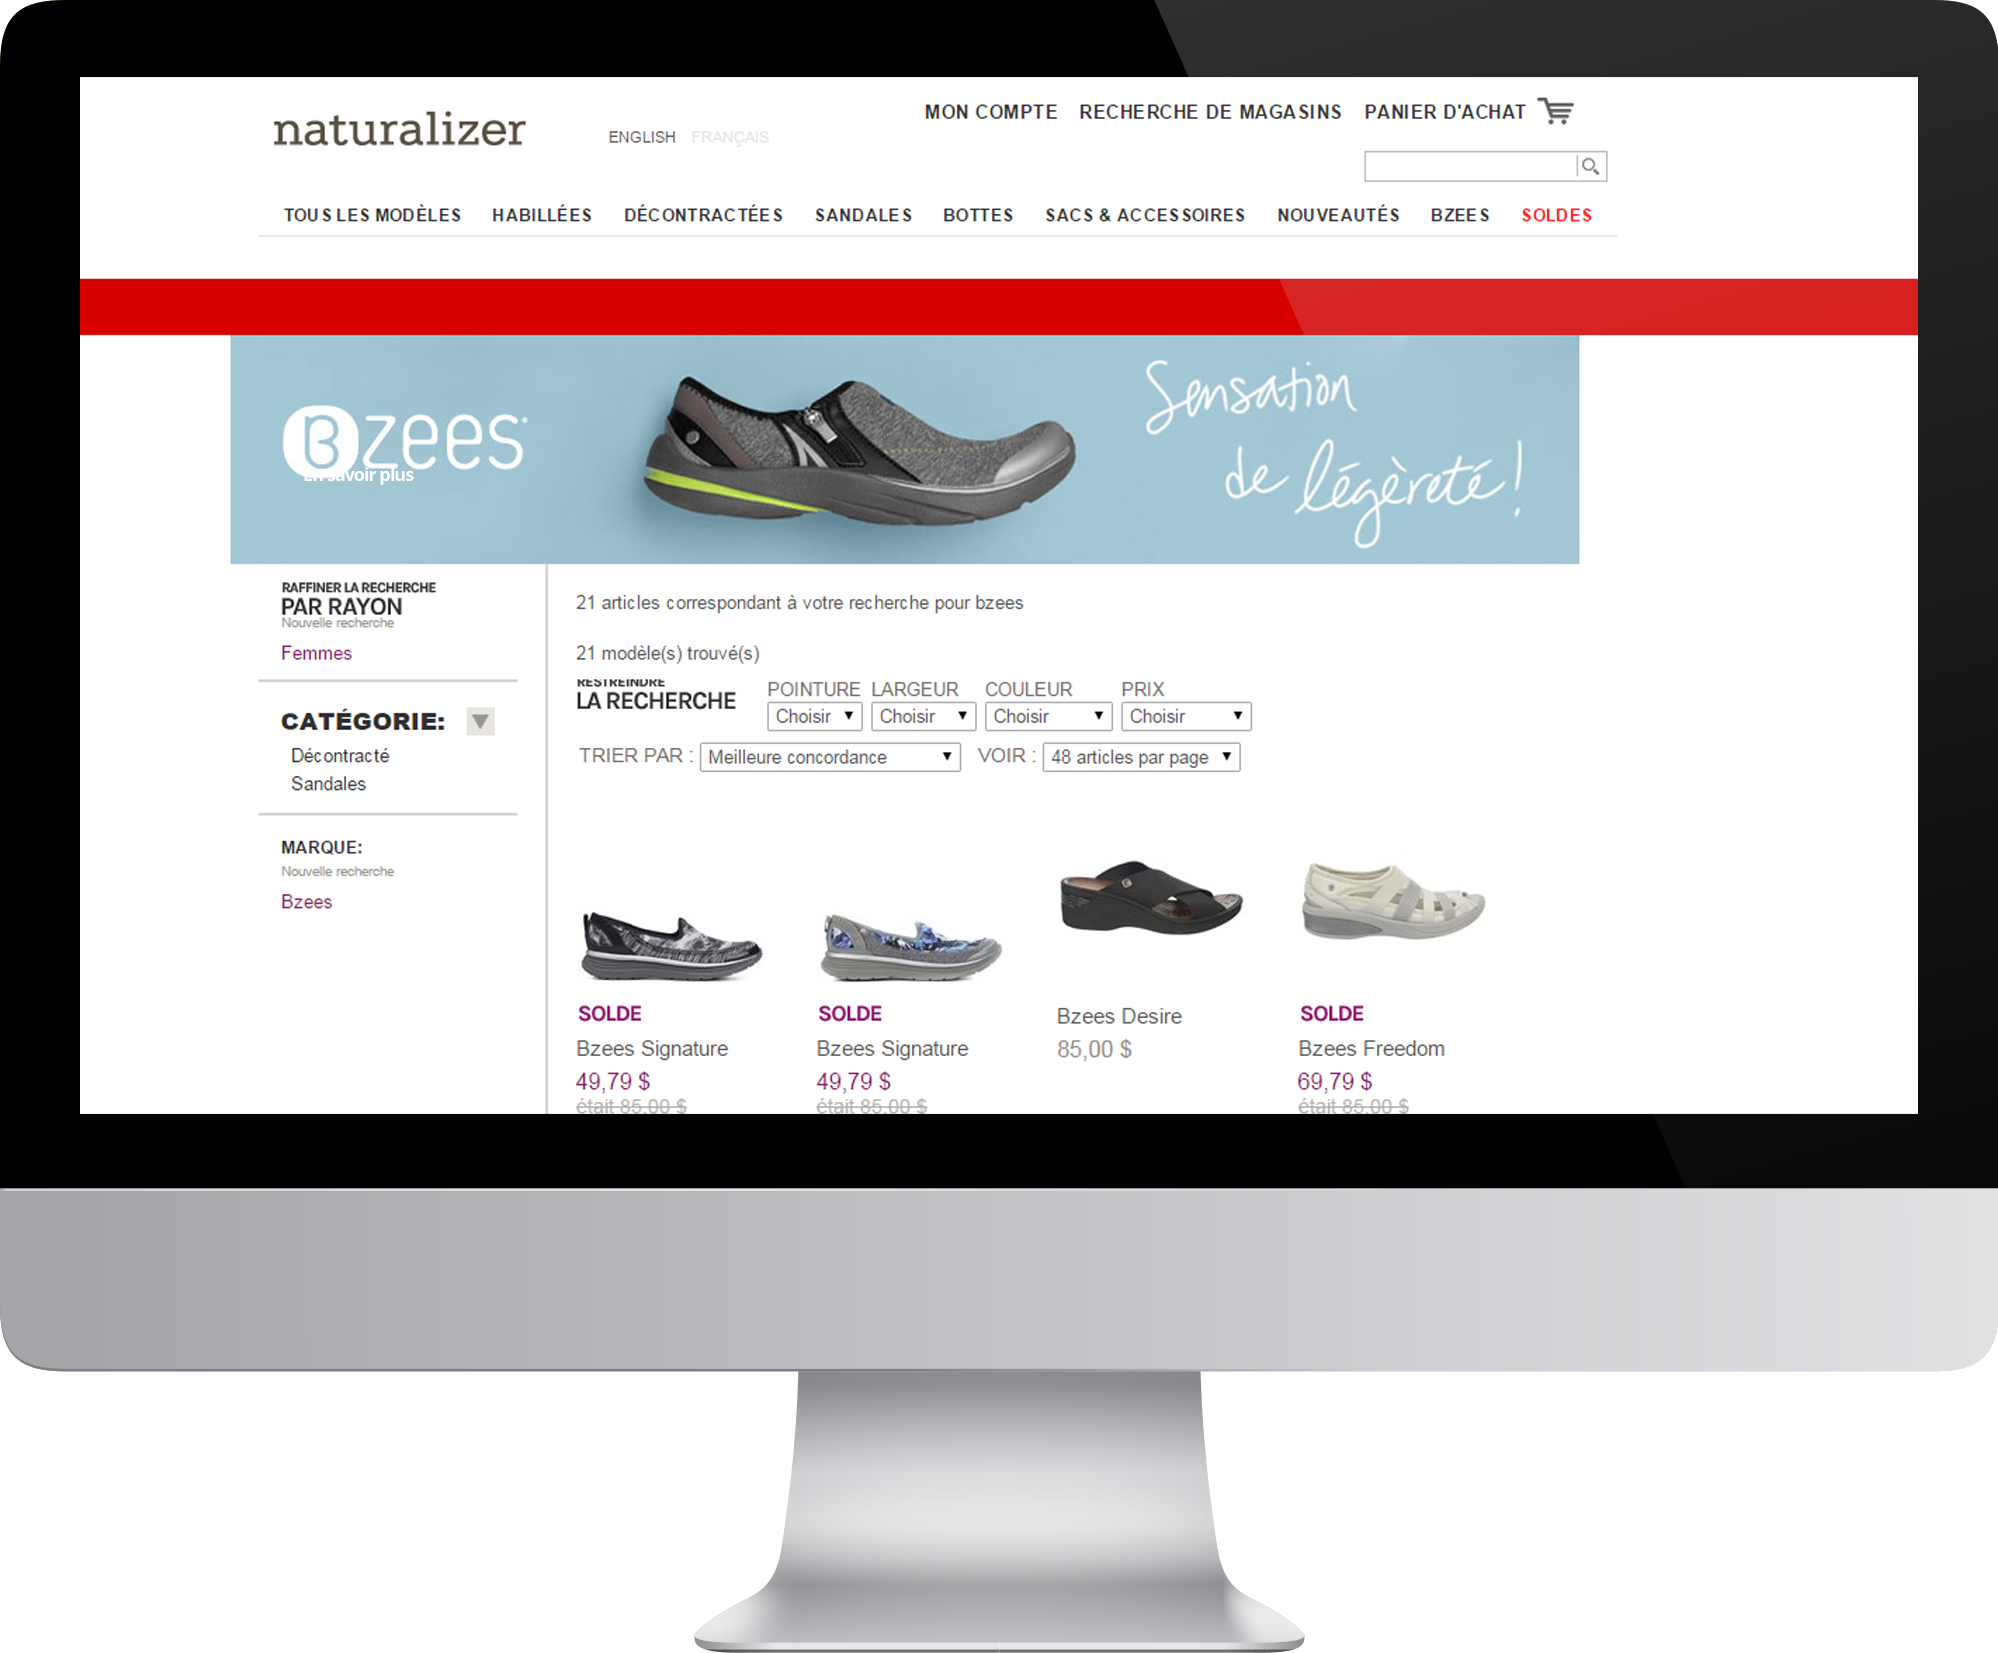 French website catalog localization screenshot of Naturalizer online